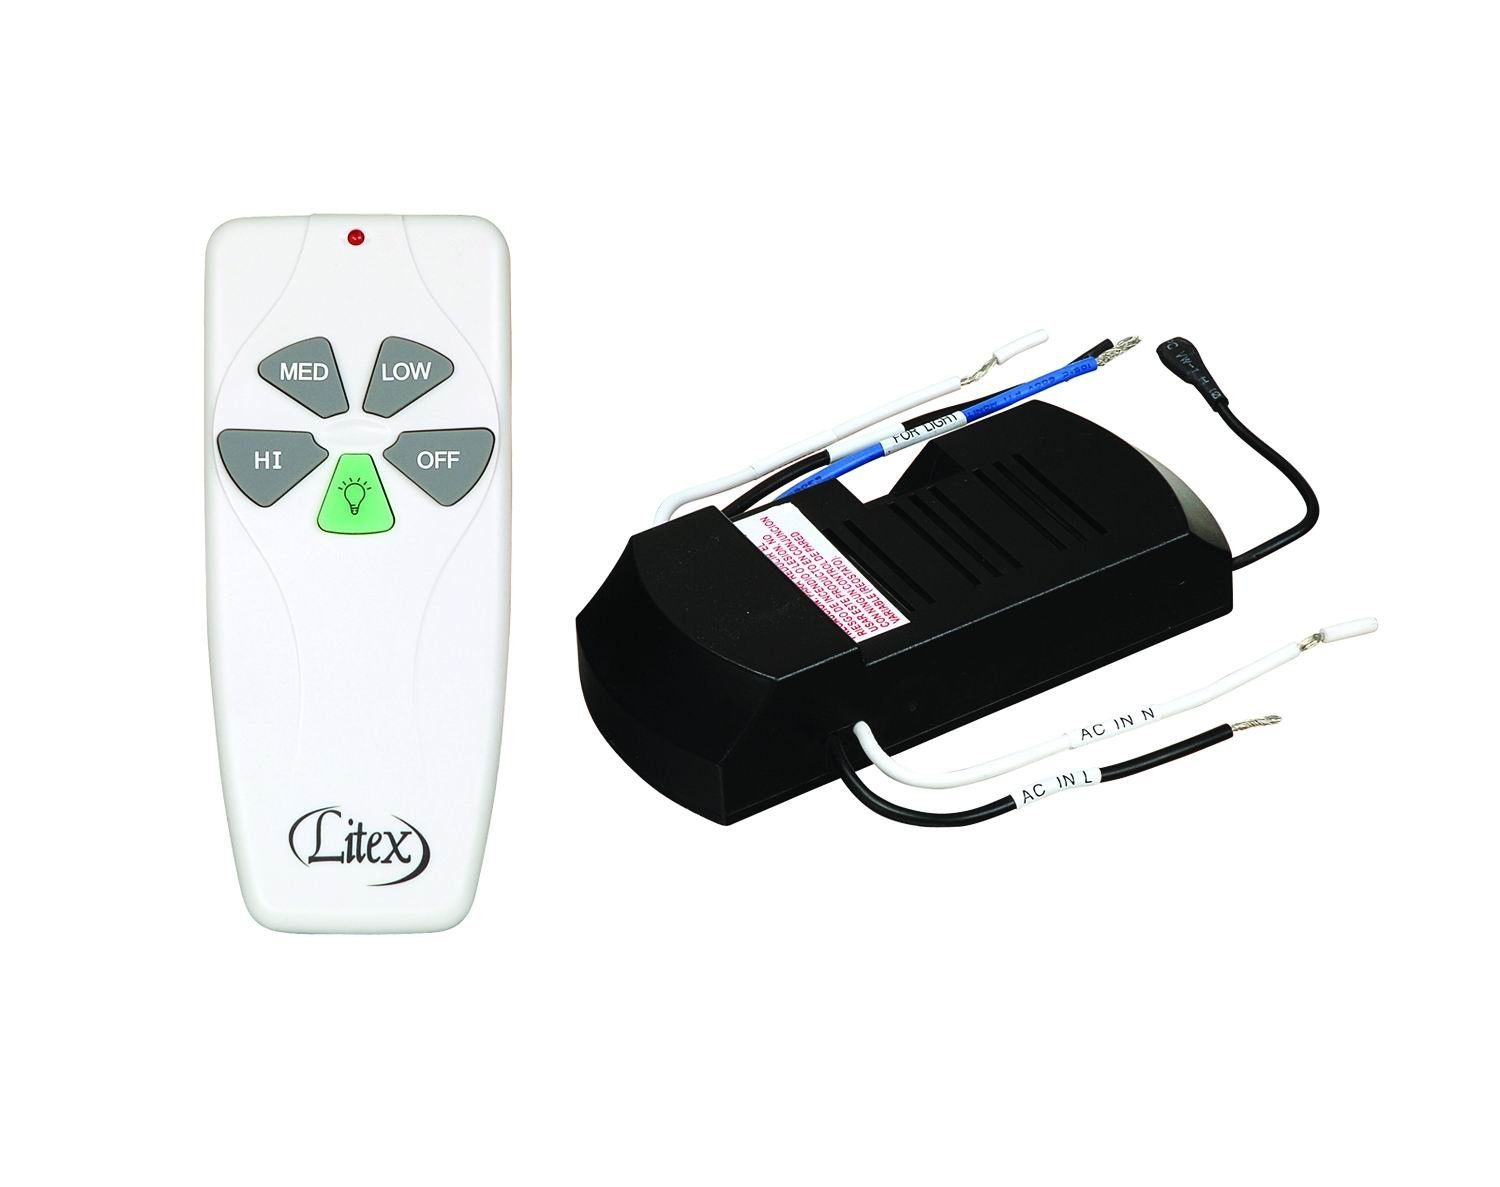 Litex RCI-103 Universal Remote Control with Three Speeds and Full Range Dimmer